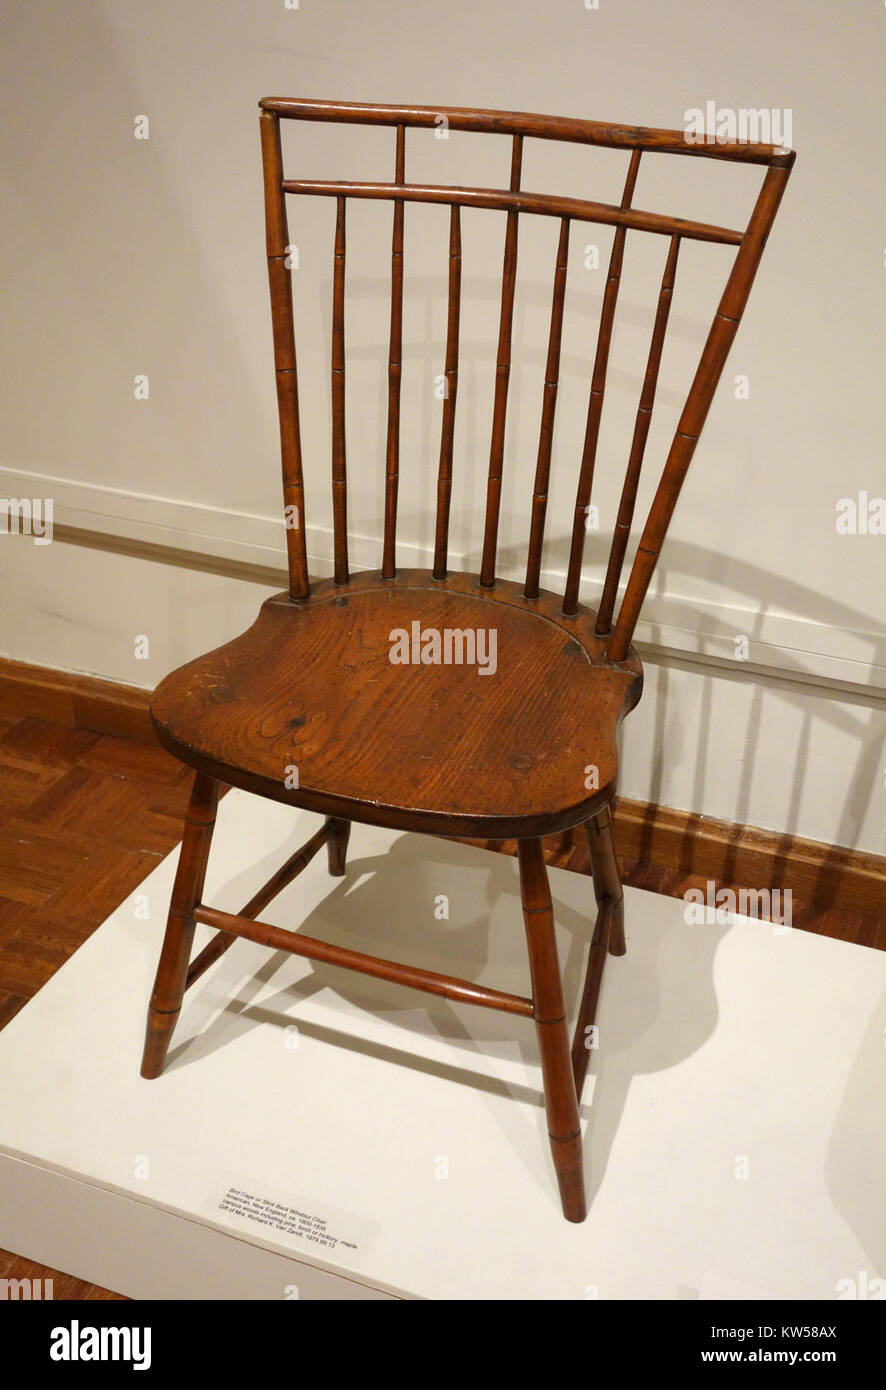 Windsor Back Chair Stock Photos Windsor Back Chair Stock Images